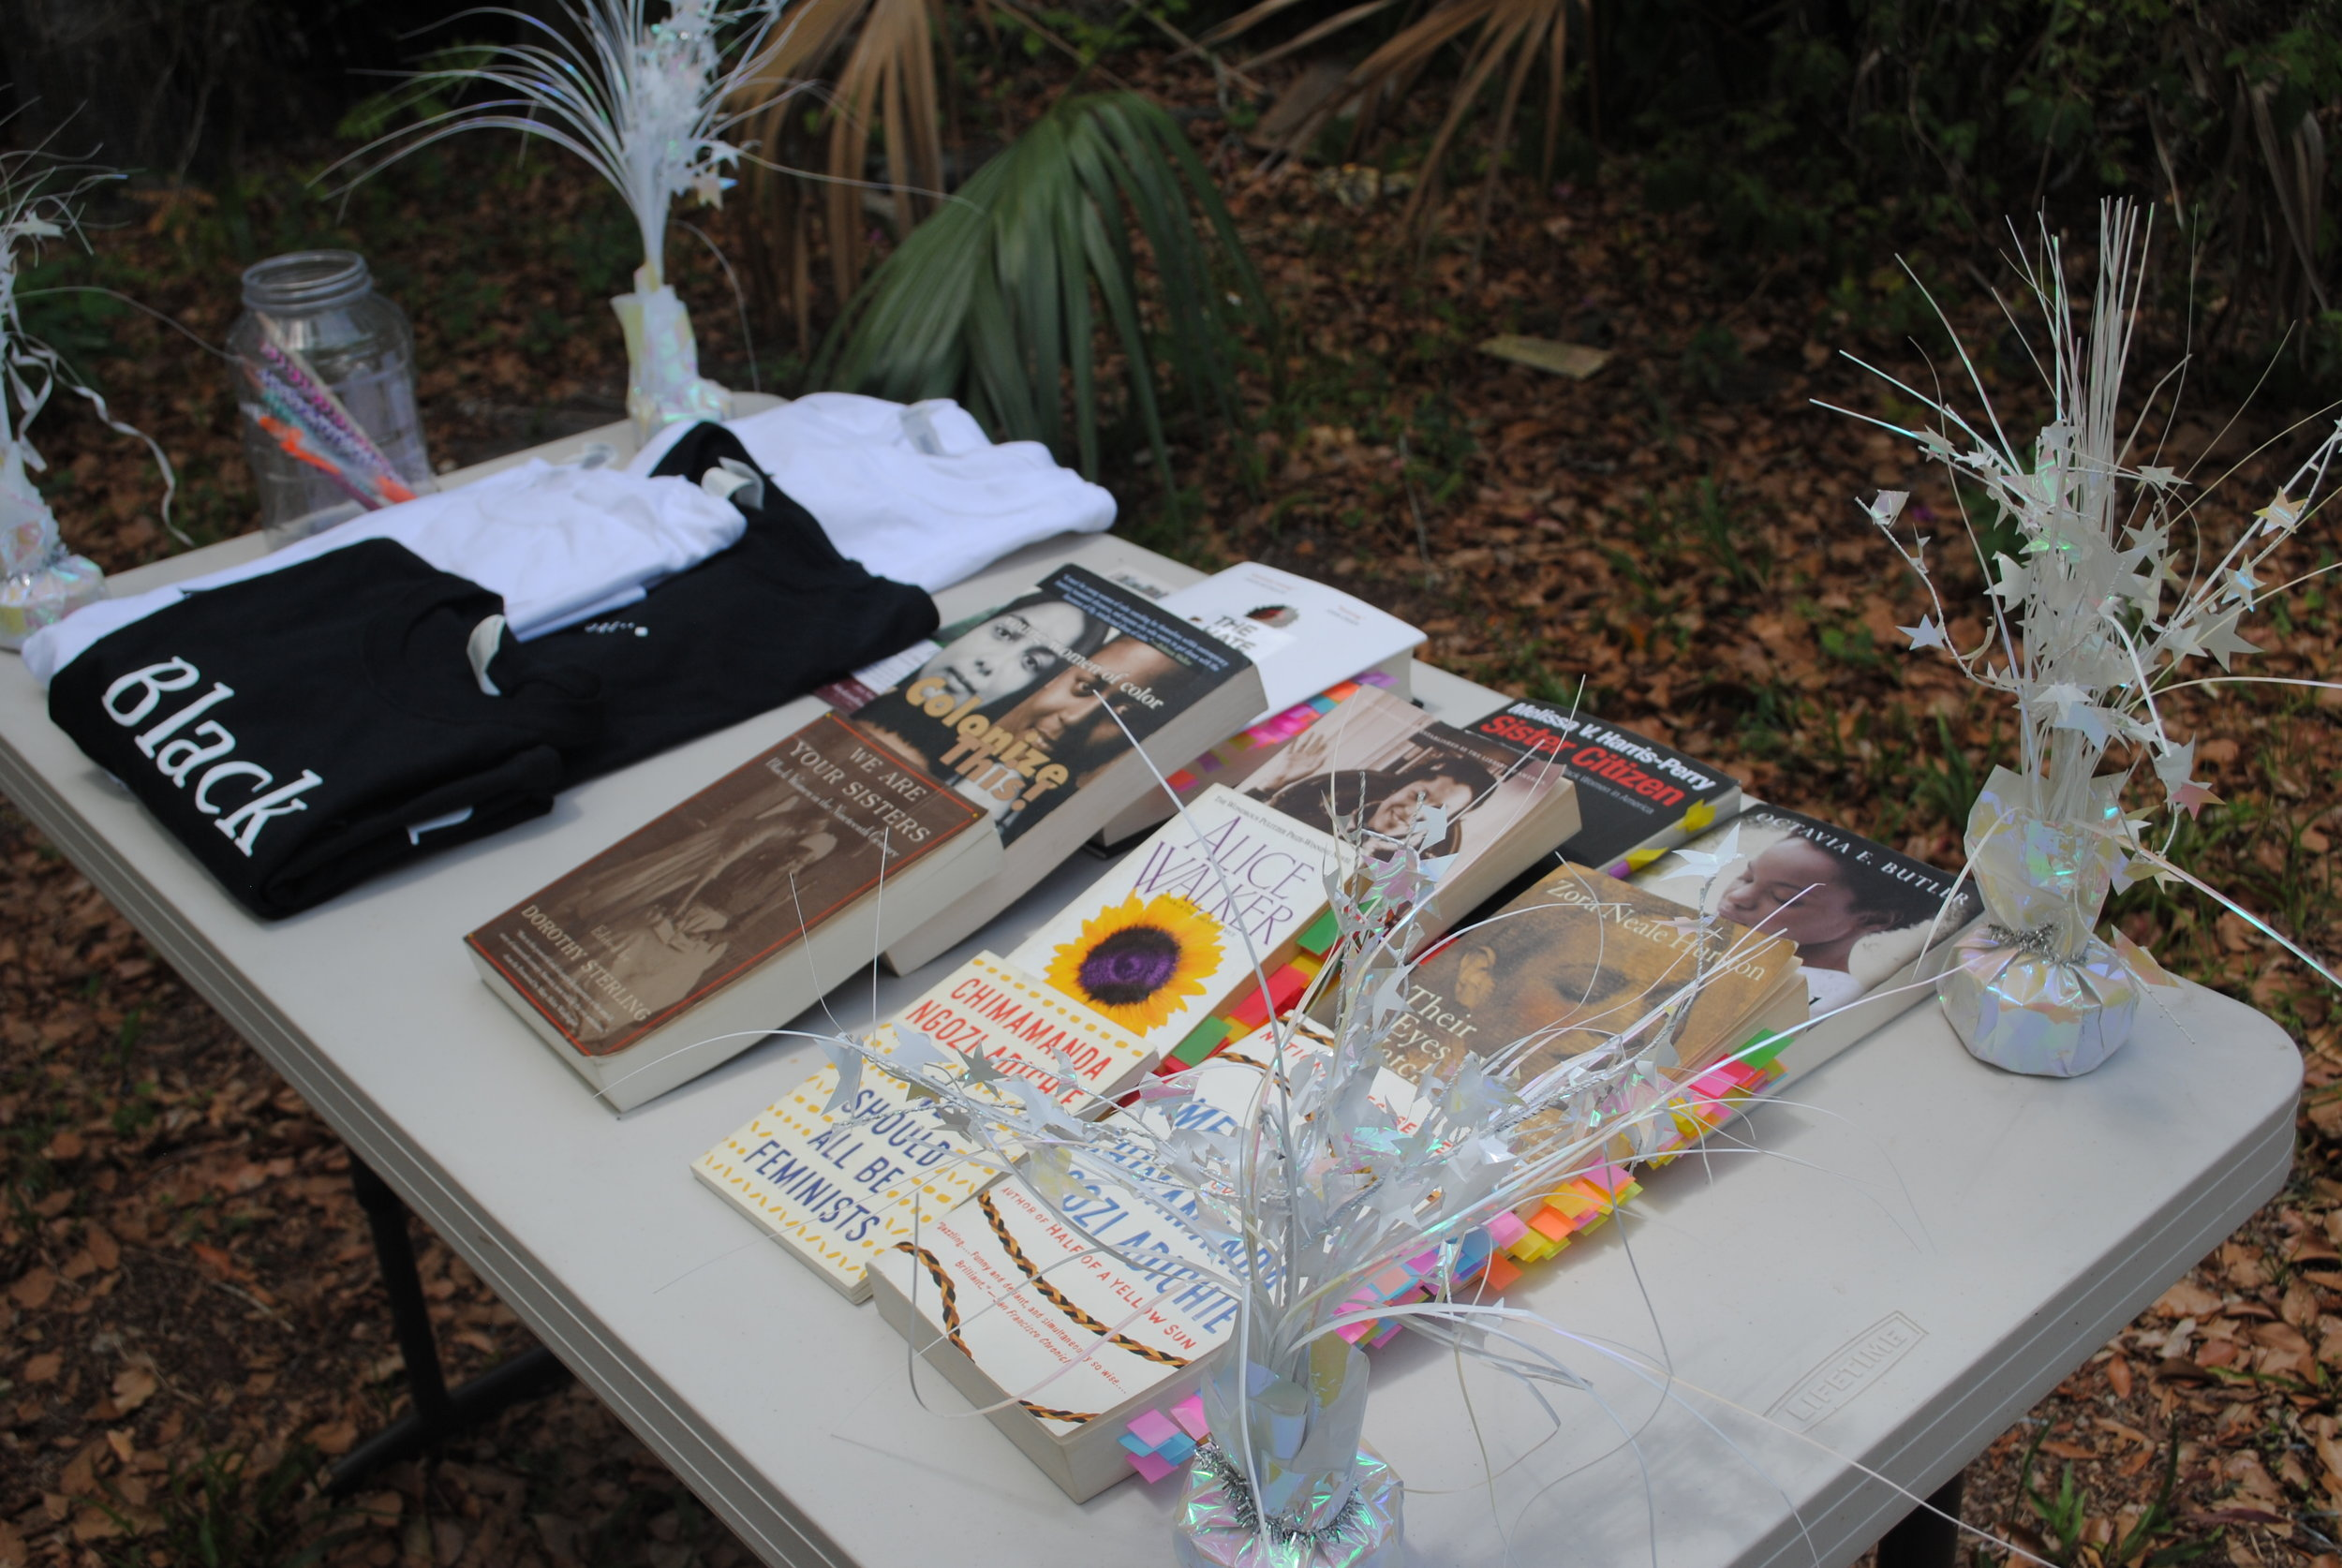 Table With Books and Tshirts